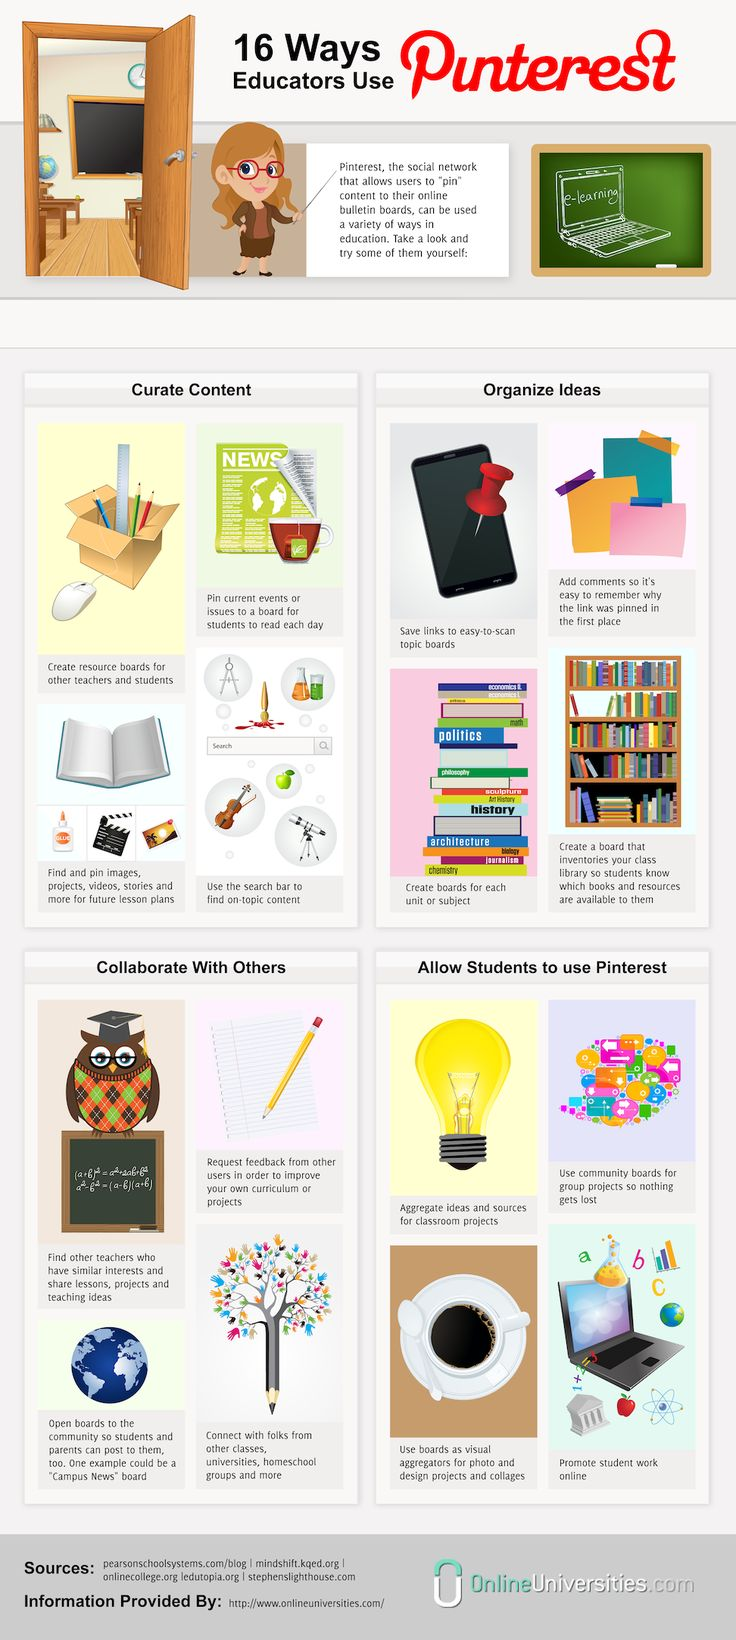 How teachers can use Pinterest to organize lesson plans, distribute curricula, collaborate with other faculty, and even encourage student participation.Internet Marketing, Technology, Social Media, The Social Network, Pinterest Infographic, Bulletin Boards, Education, Socialmedia, Teachers